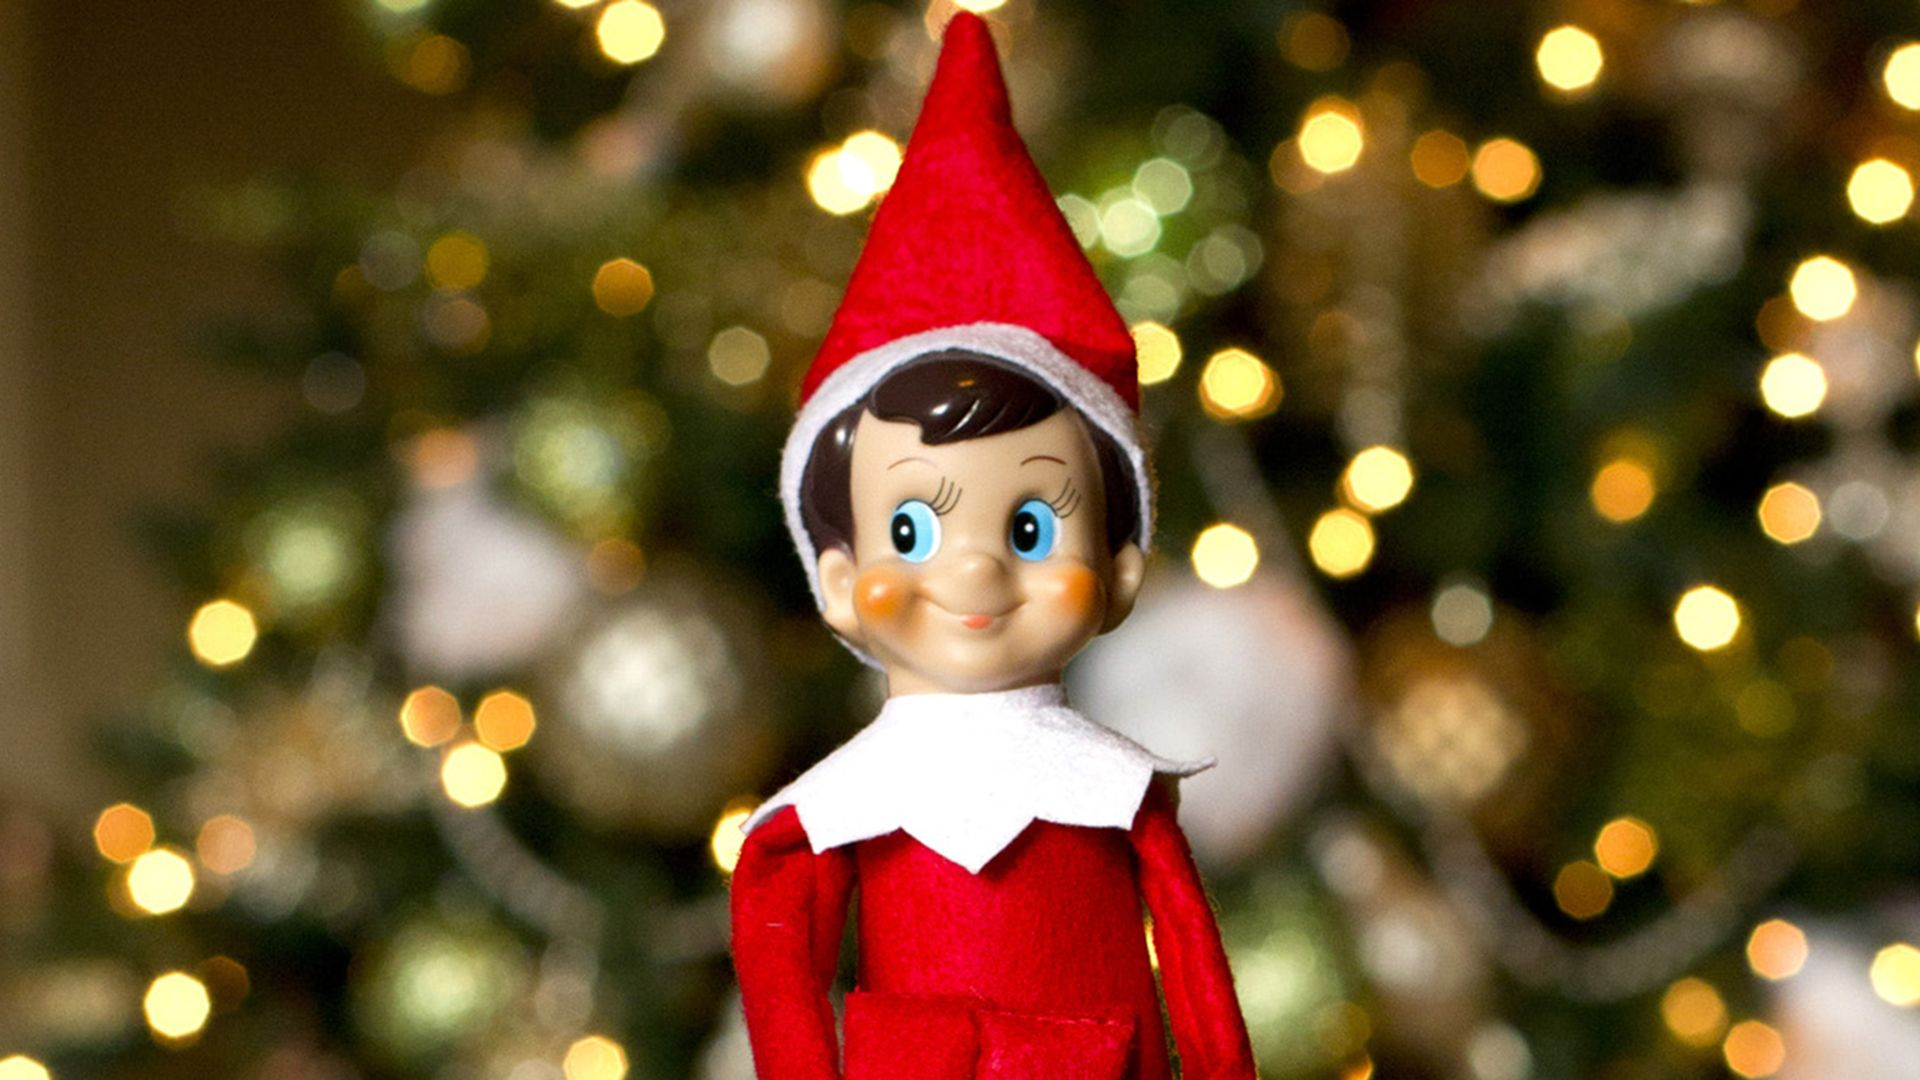 On elf shelf pics of the